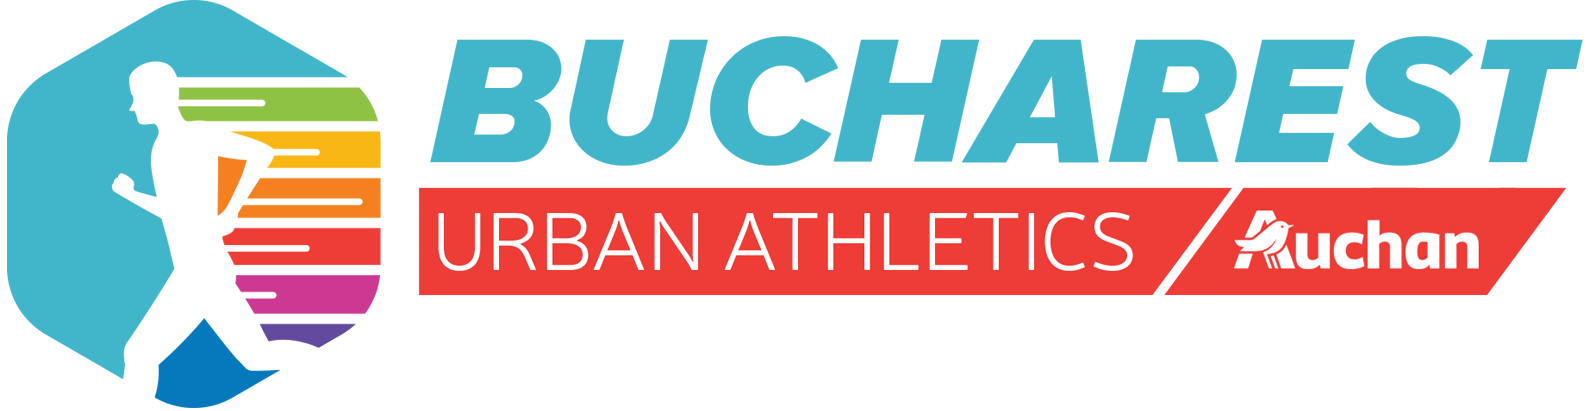 logo-urban-athletics-web